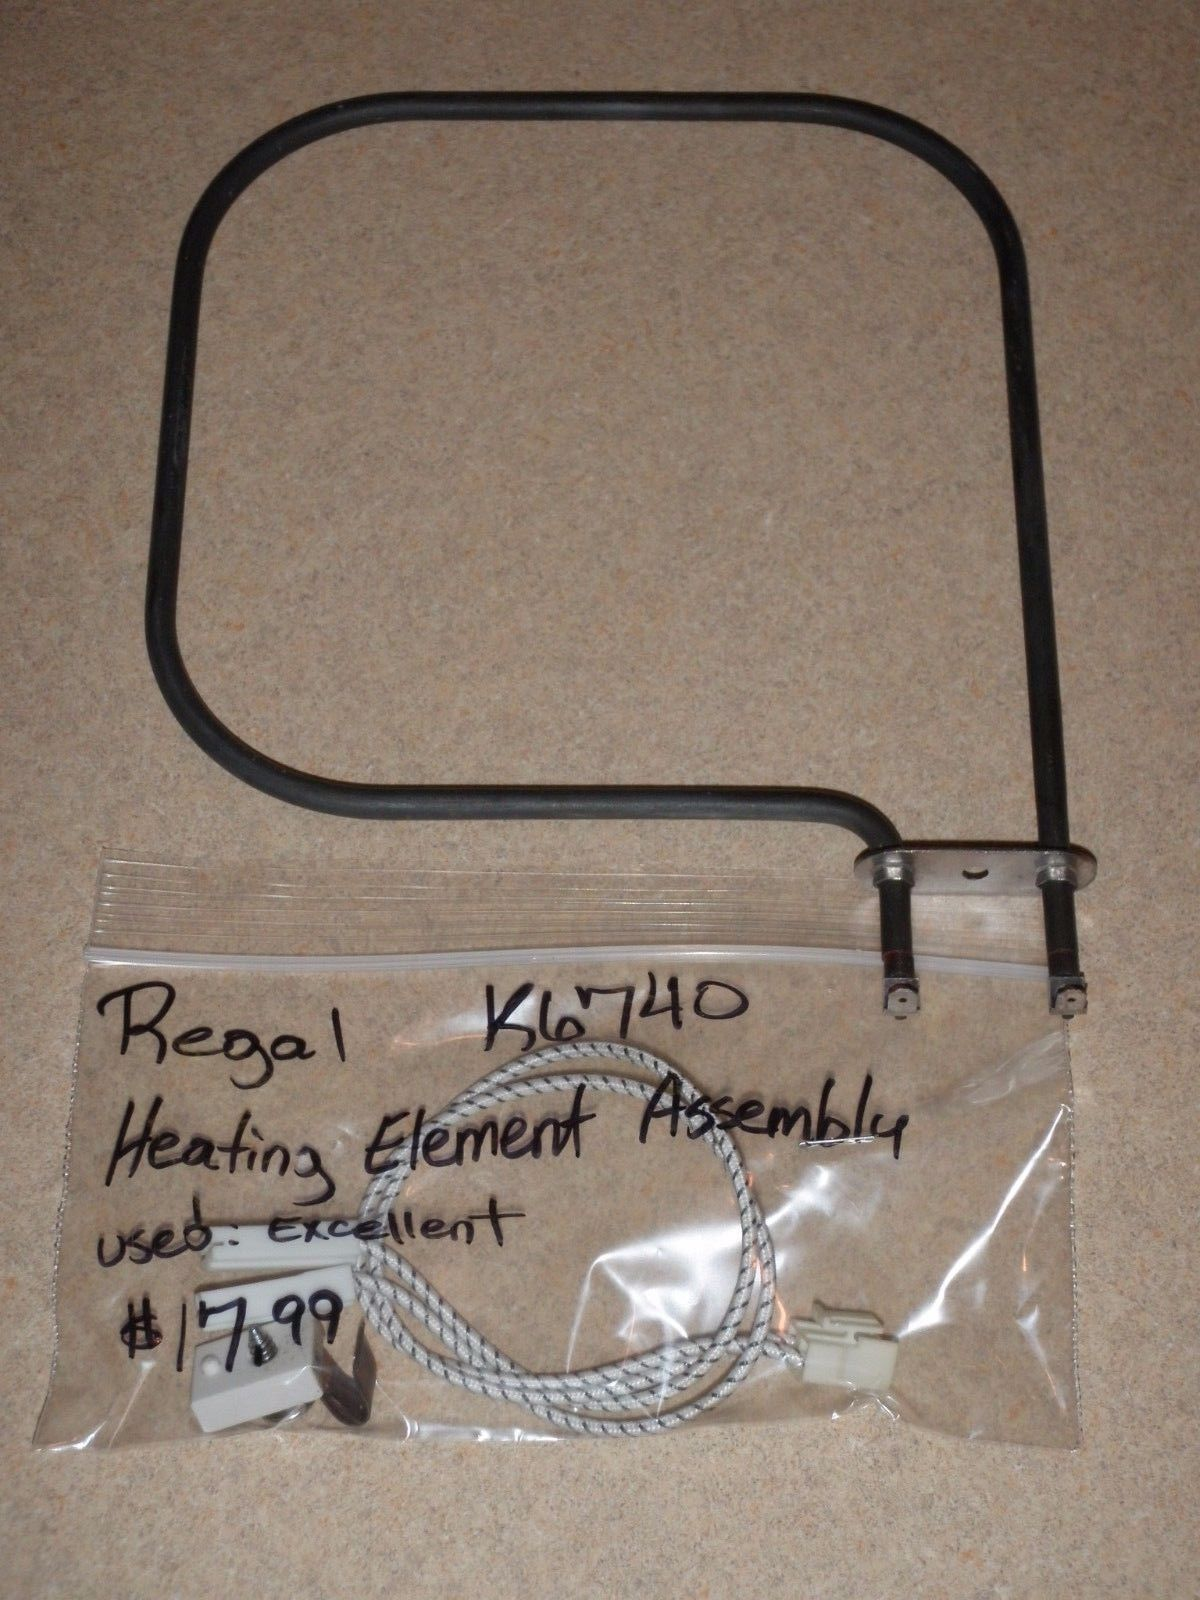 Regal Bread Machine Heating Element Assembly K6740 (BMPF)